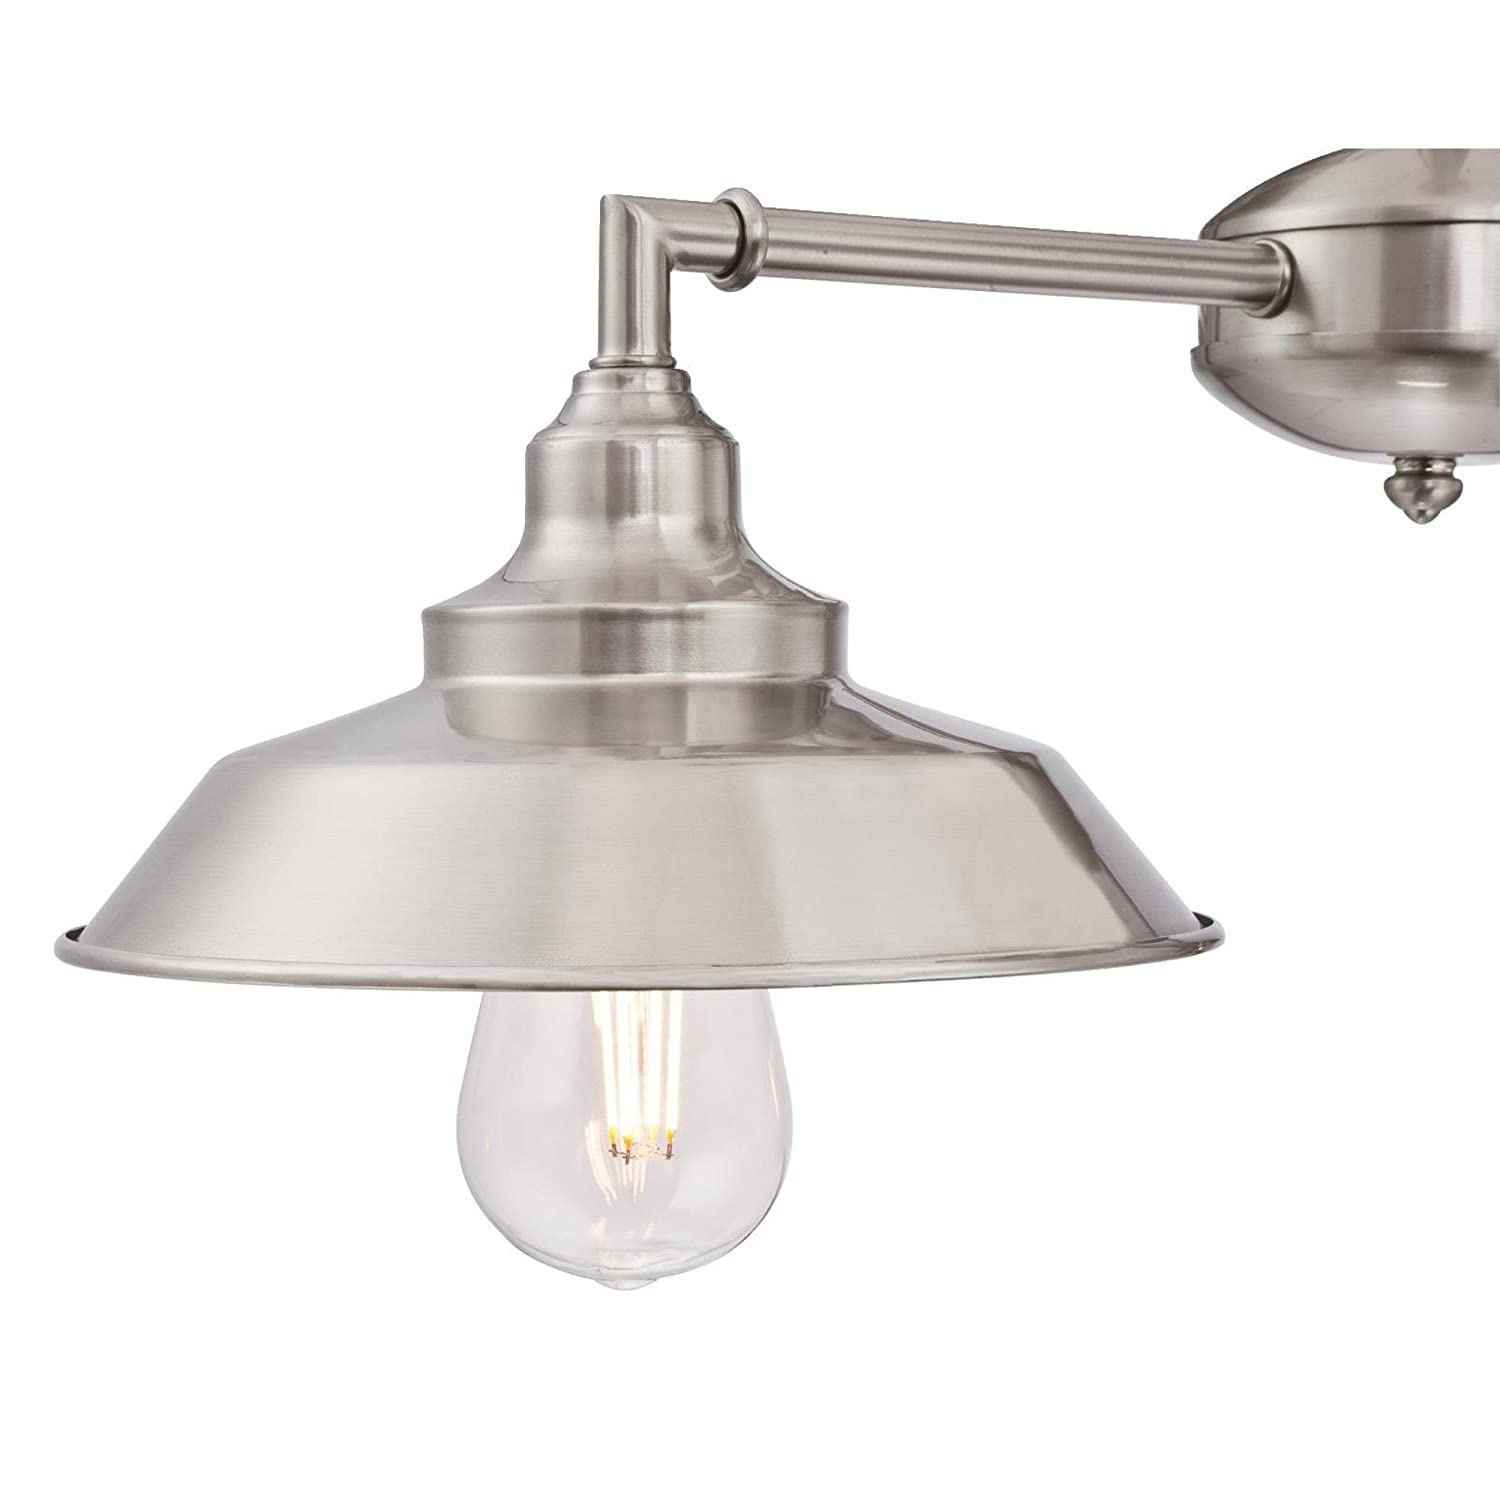 Oil Rubbed Finish with Highlights and Metallic Bronze Interior 3 Westinghouse Lighting 6332500 Iron Hill Three-Light Indoor Island Pulley Pendant